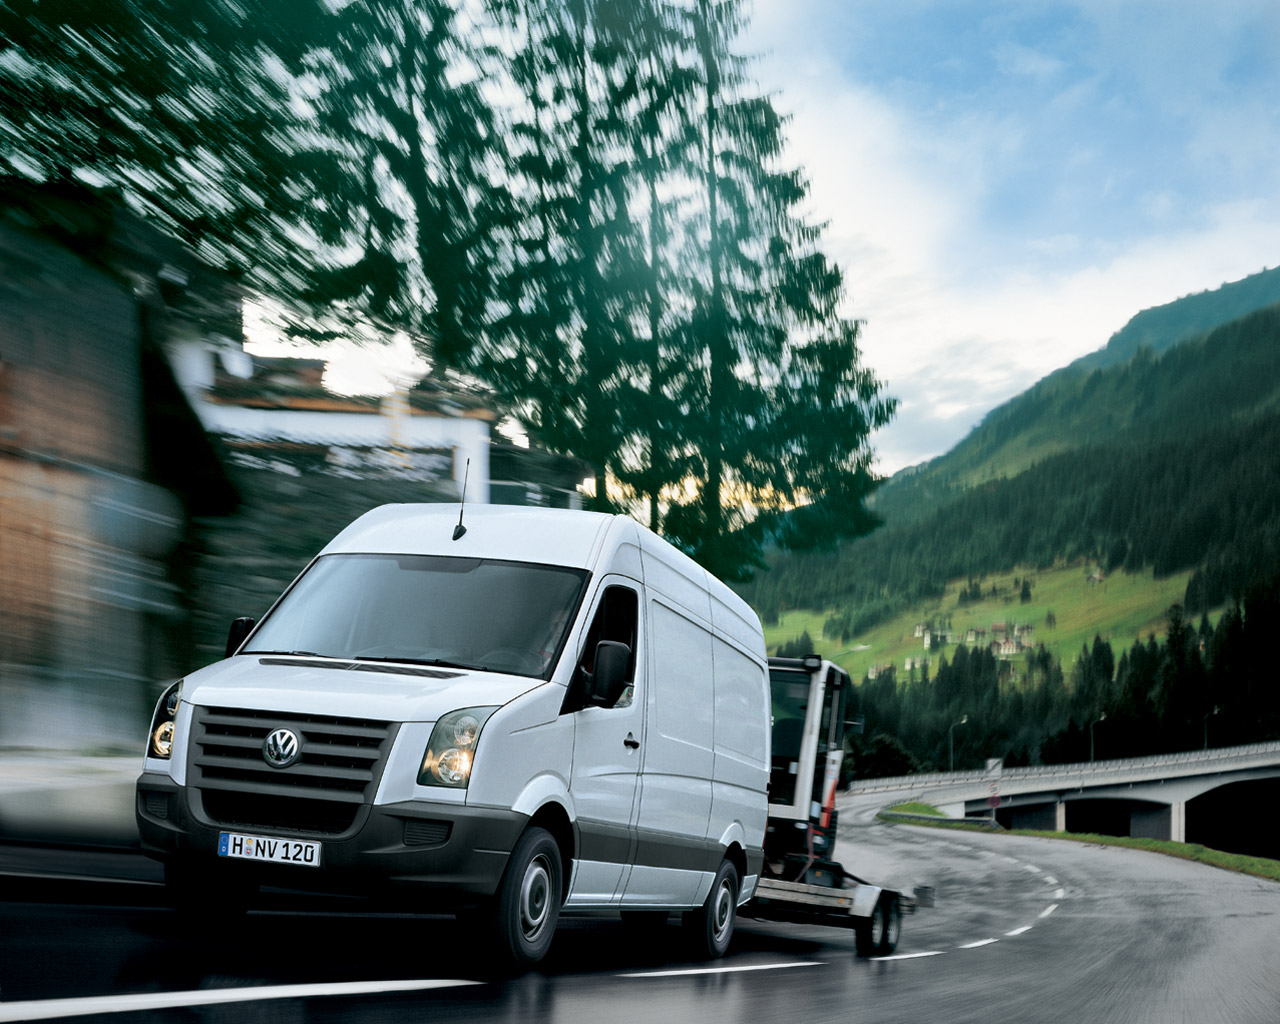 Volkswagen Crafter photos - PhotoGallery with 22 pics| CarsBase.com